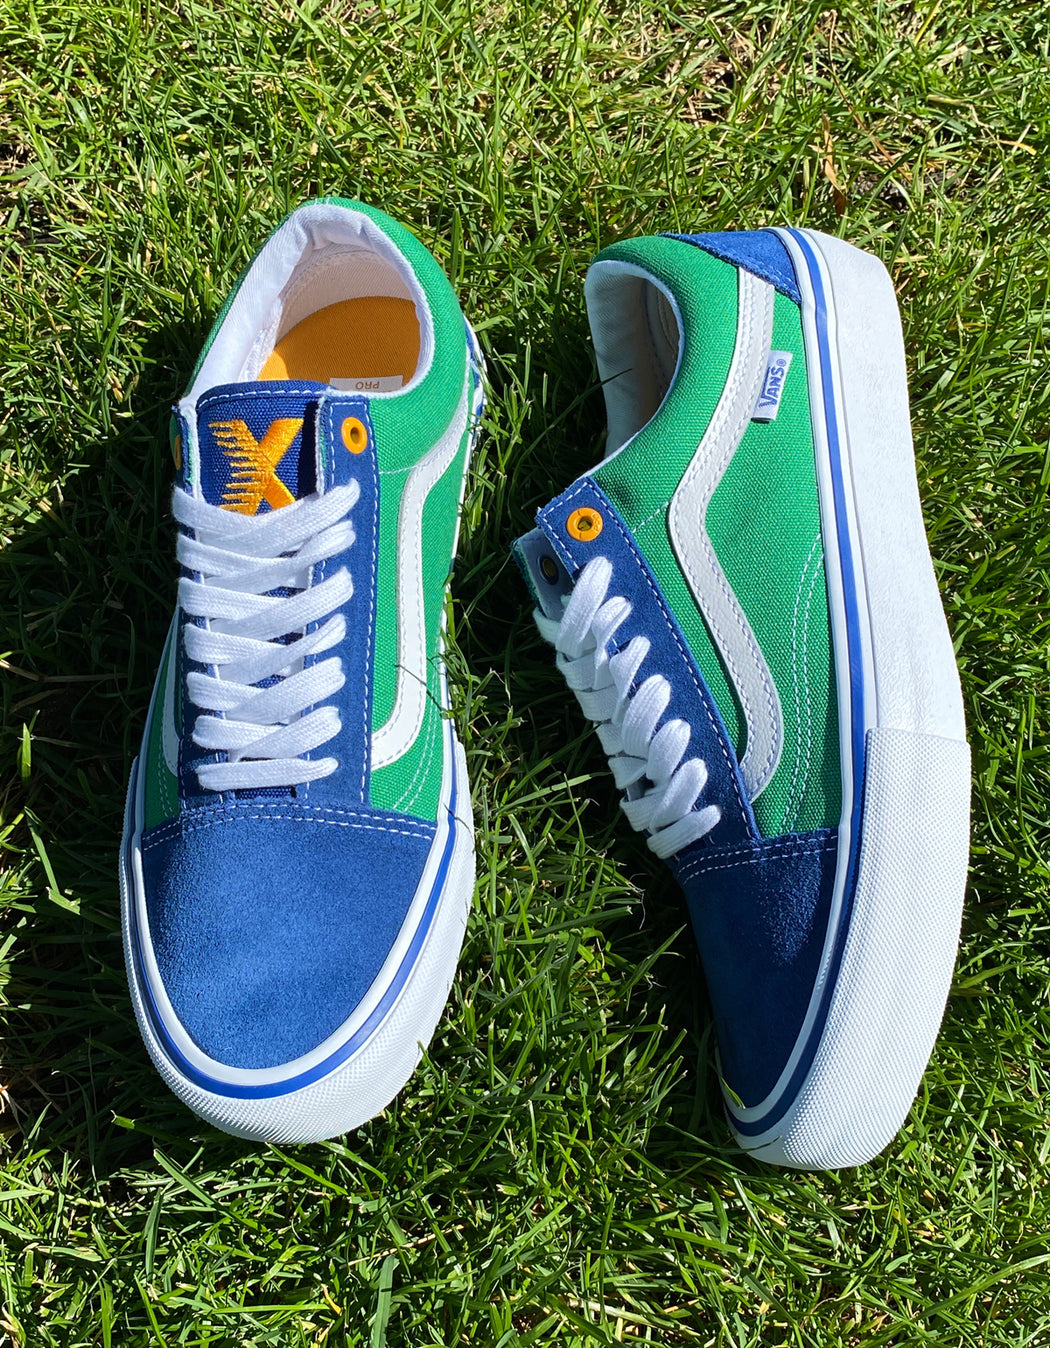 Vans SCI-FI Fantasy Old Skool Pro Blue Green